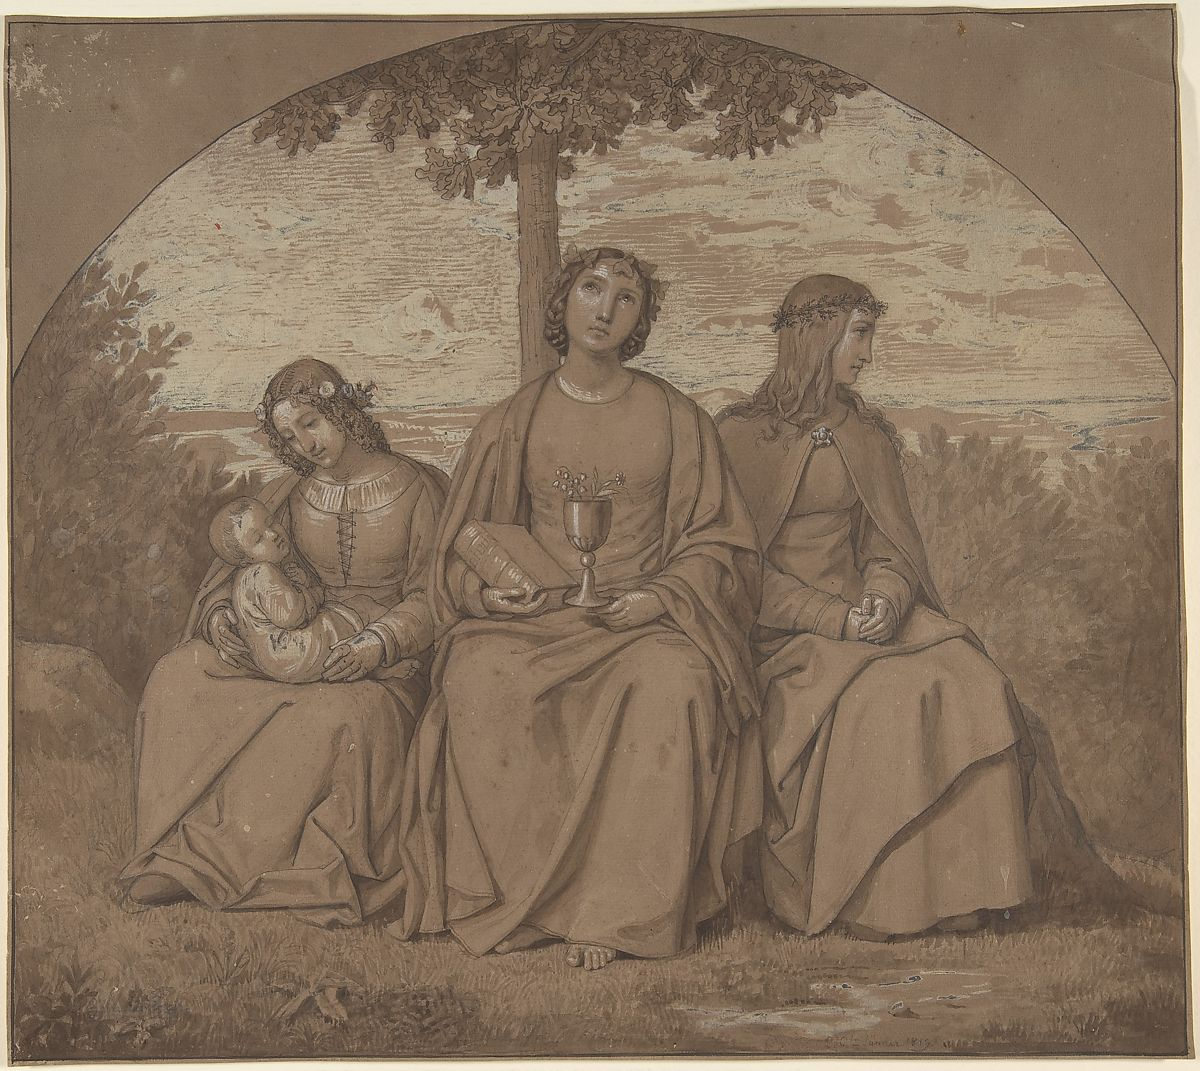 Allegories of Faith, Hope, and Charity, Heinrich Maria von Hess (German, Dusseldorf 1798–1863 Munich), Graphite, pen and brown ink, brush and brown wash heightened with white (partly oxidized), in an inscribed arch on brown paper